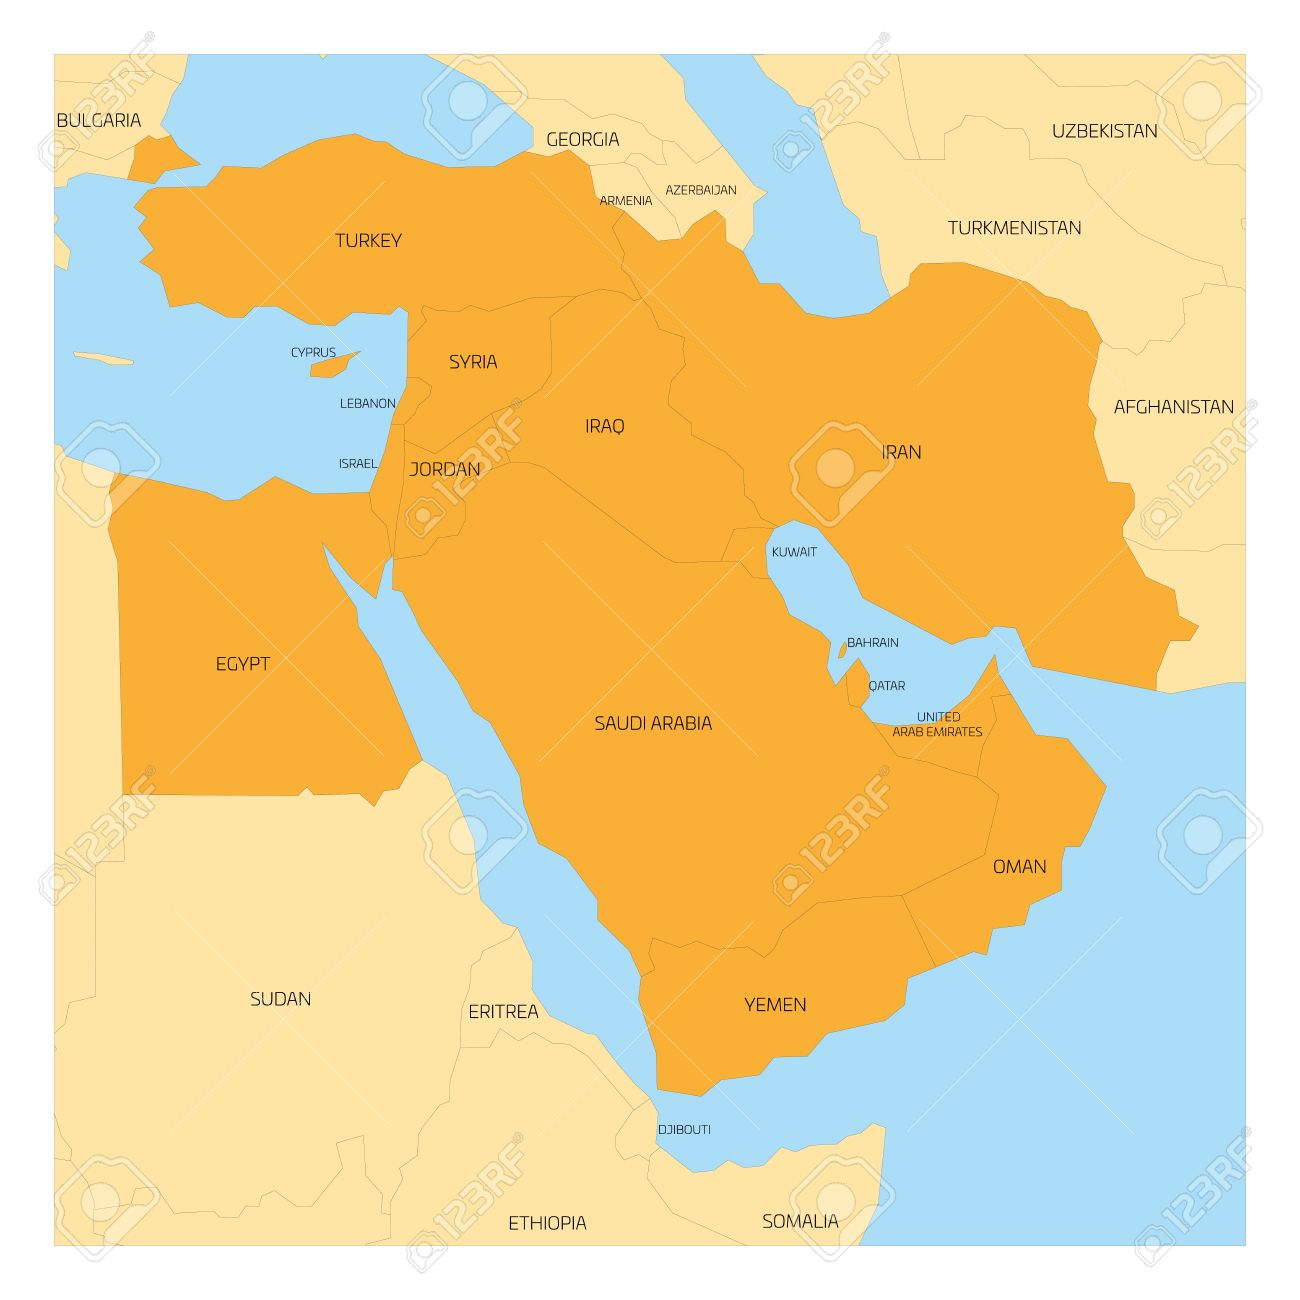 Map Of Middle East Or Near East Transcontinental Region With - Map of egypt and middle east